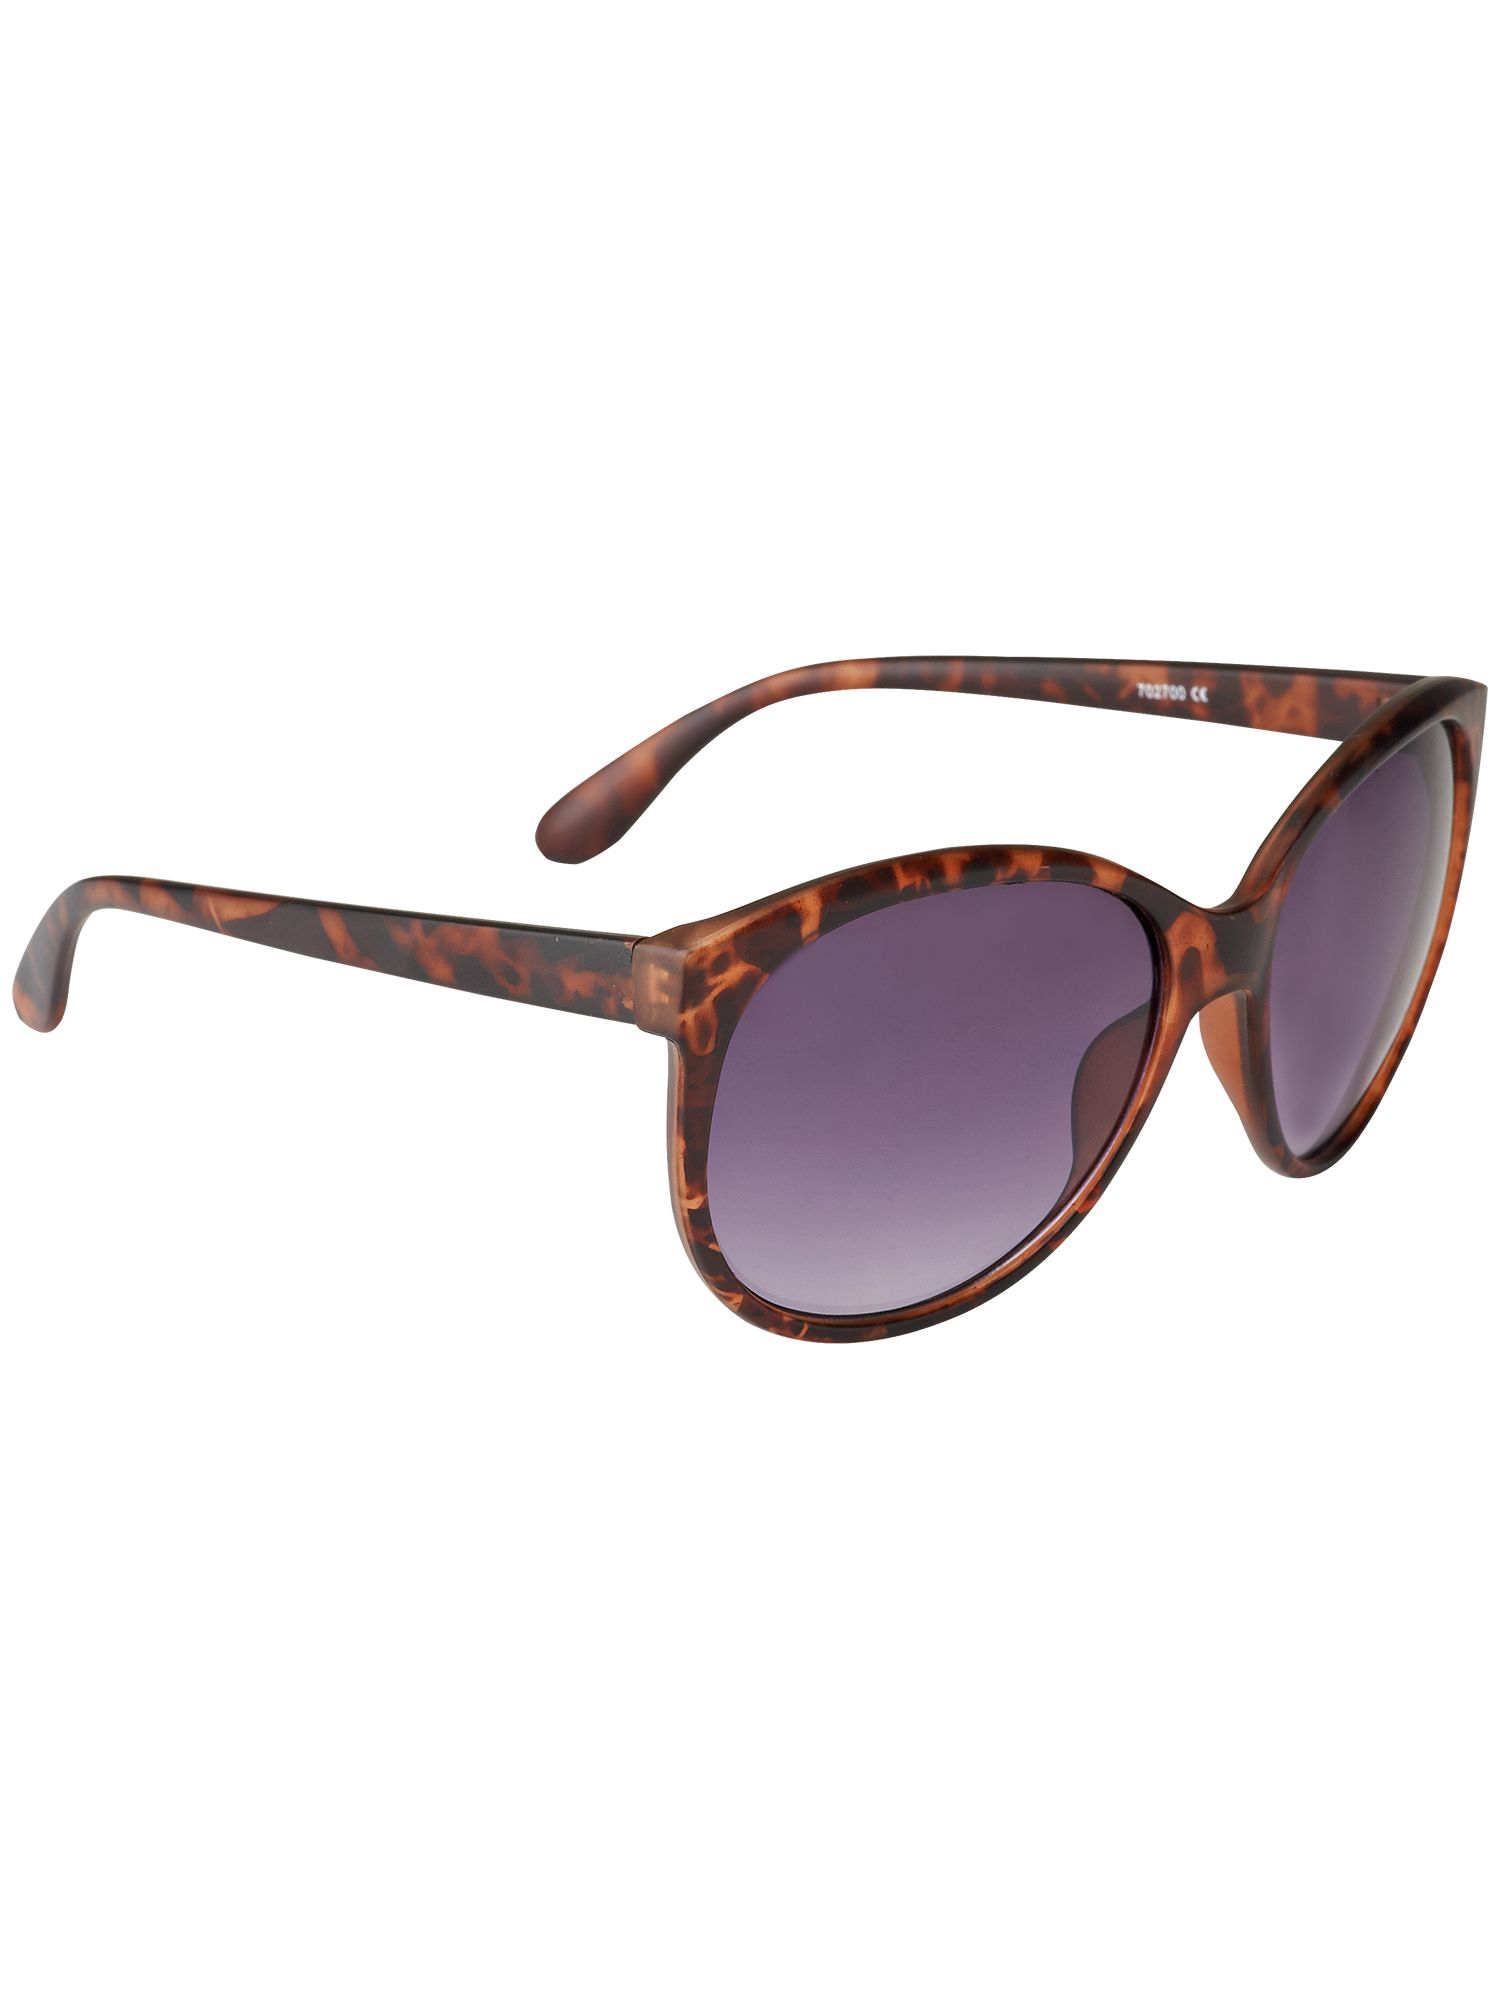 Babette matt cats eye sunglasses